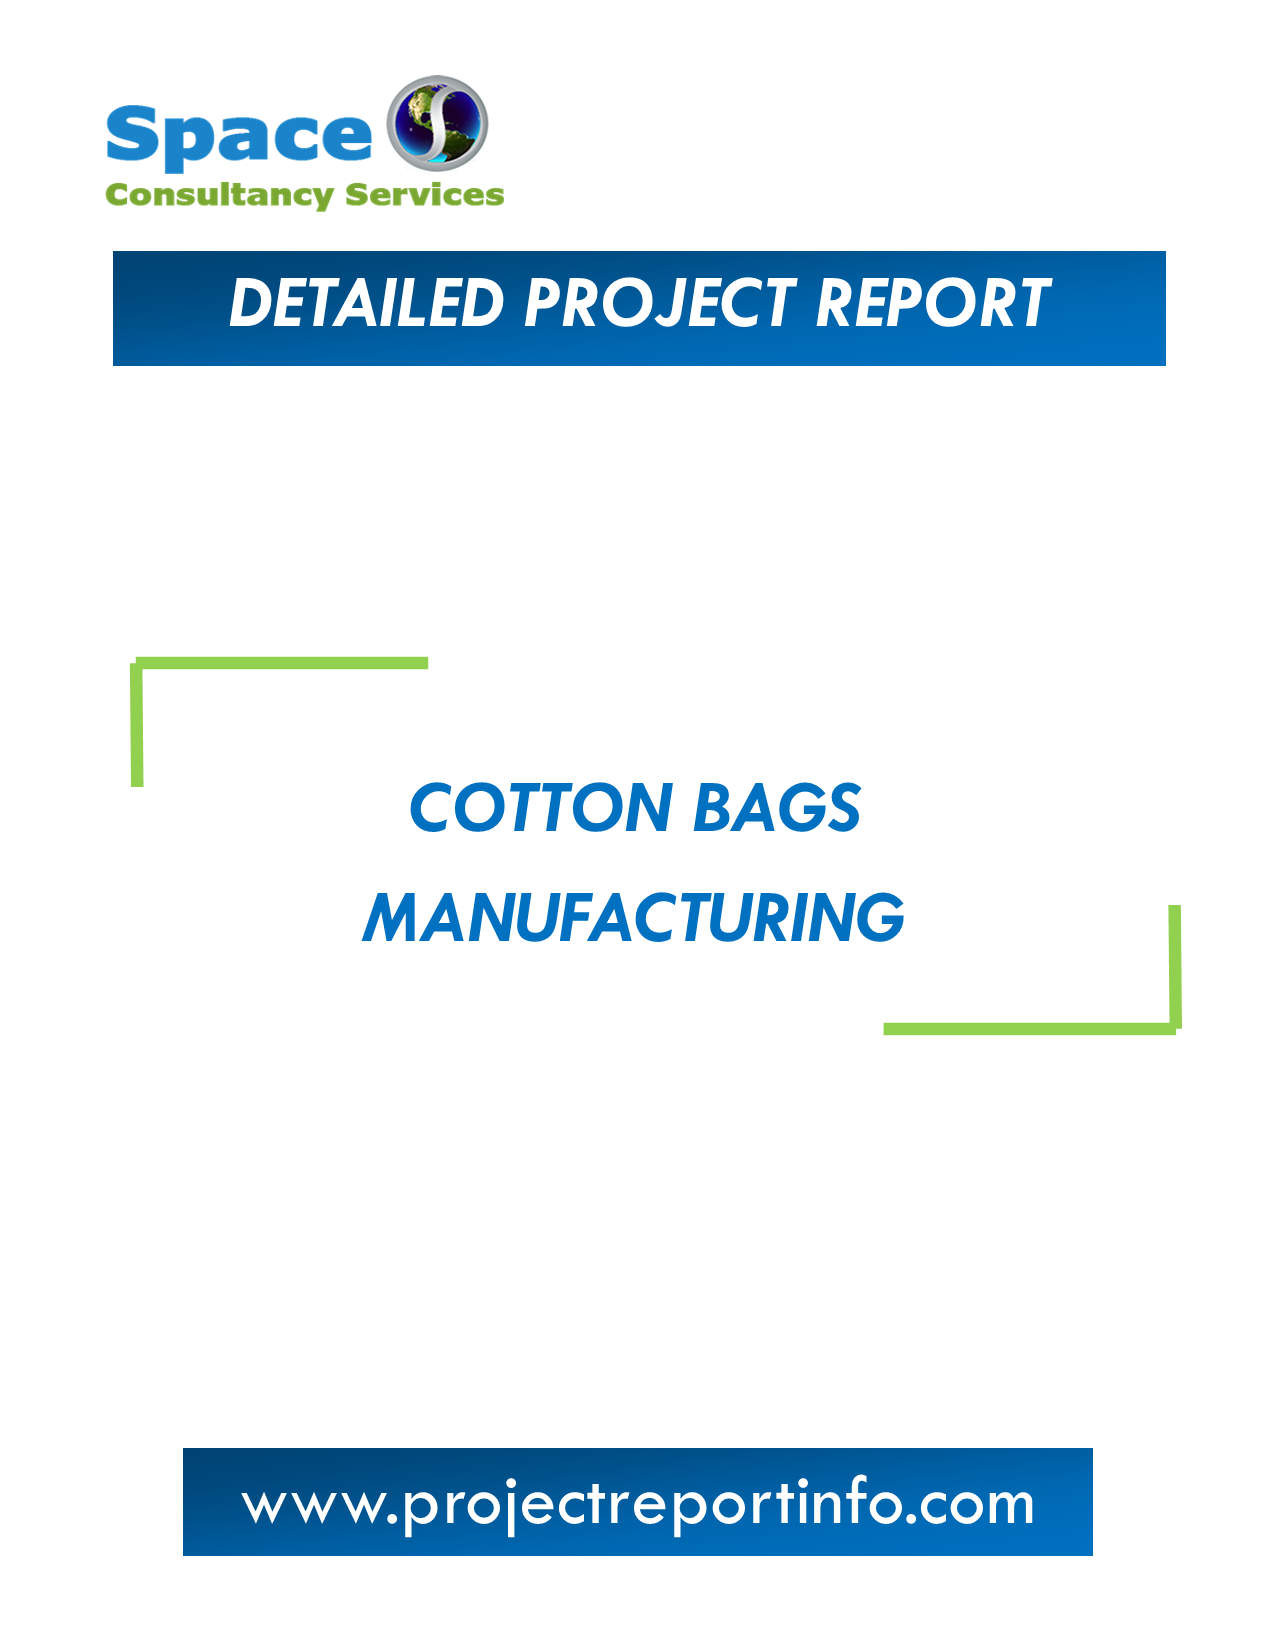 Project Report on Cotton Bags Manufacturing